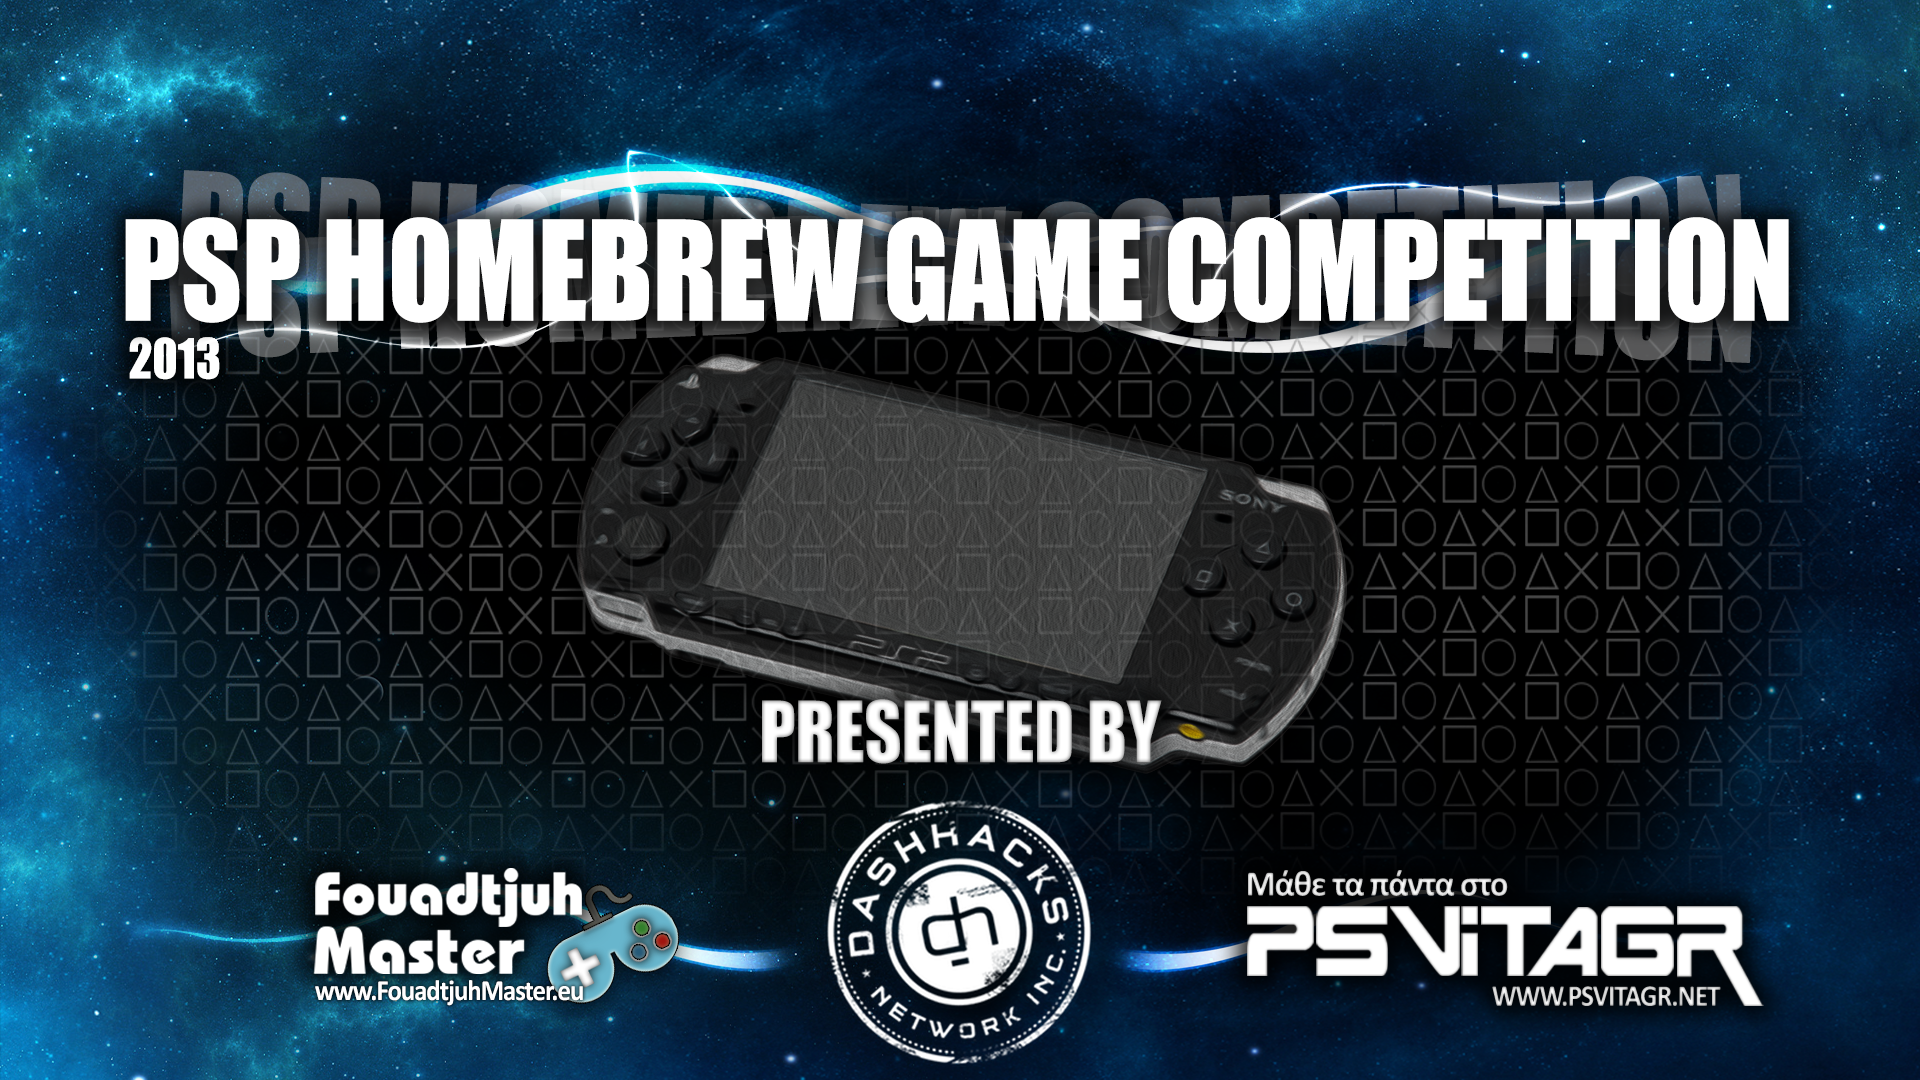 PSP HOMEBREW GAME COMPETITION 2013 (POSTER BY GODMANGEN)